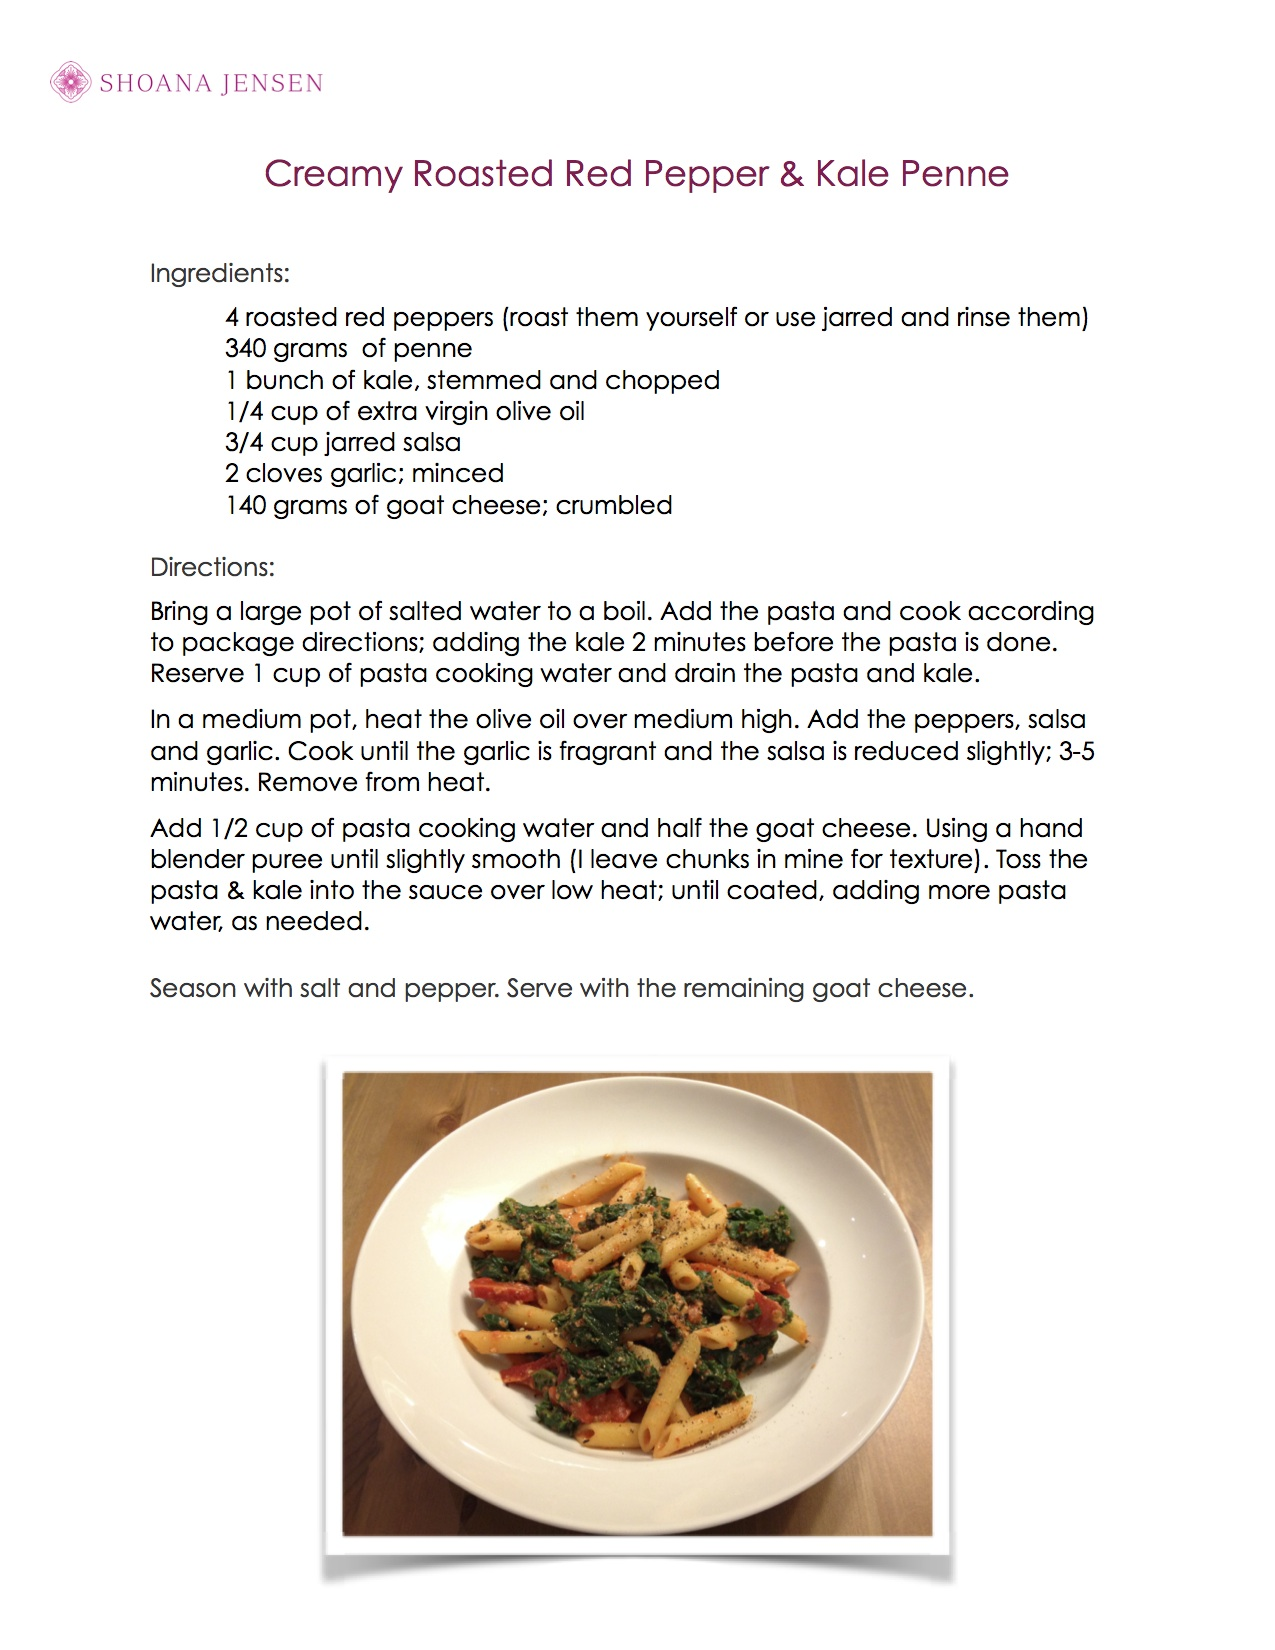 Creamed Roasted Red Pepper & Kale Penne